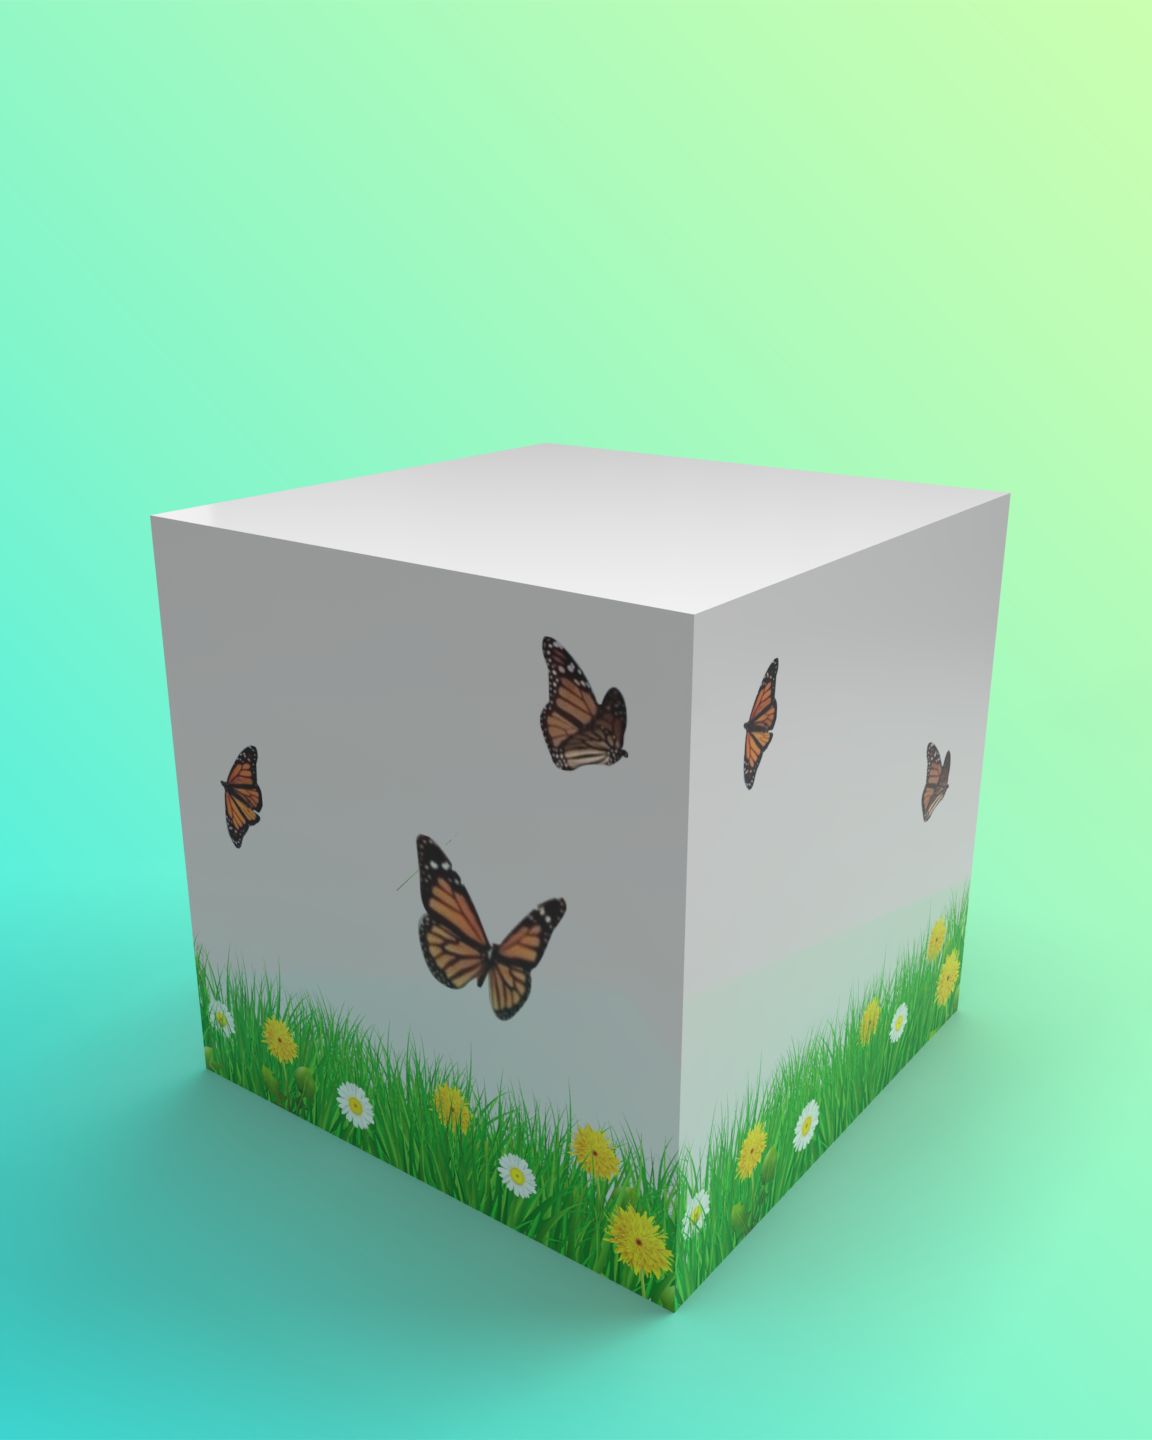 A decorative cube featuring monarch butterflies over grass a flowers painted on the sides.